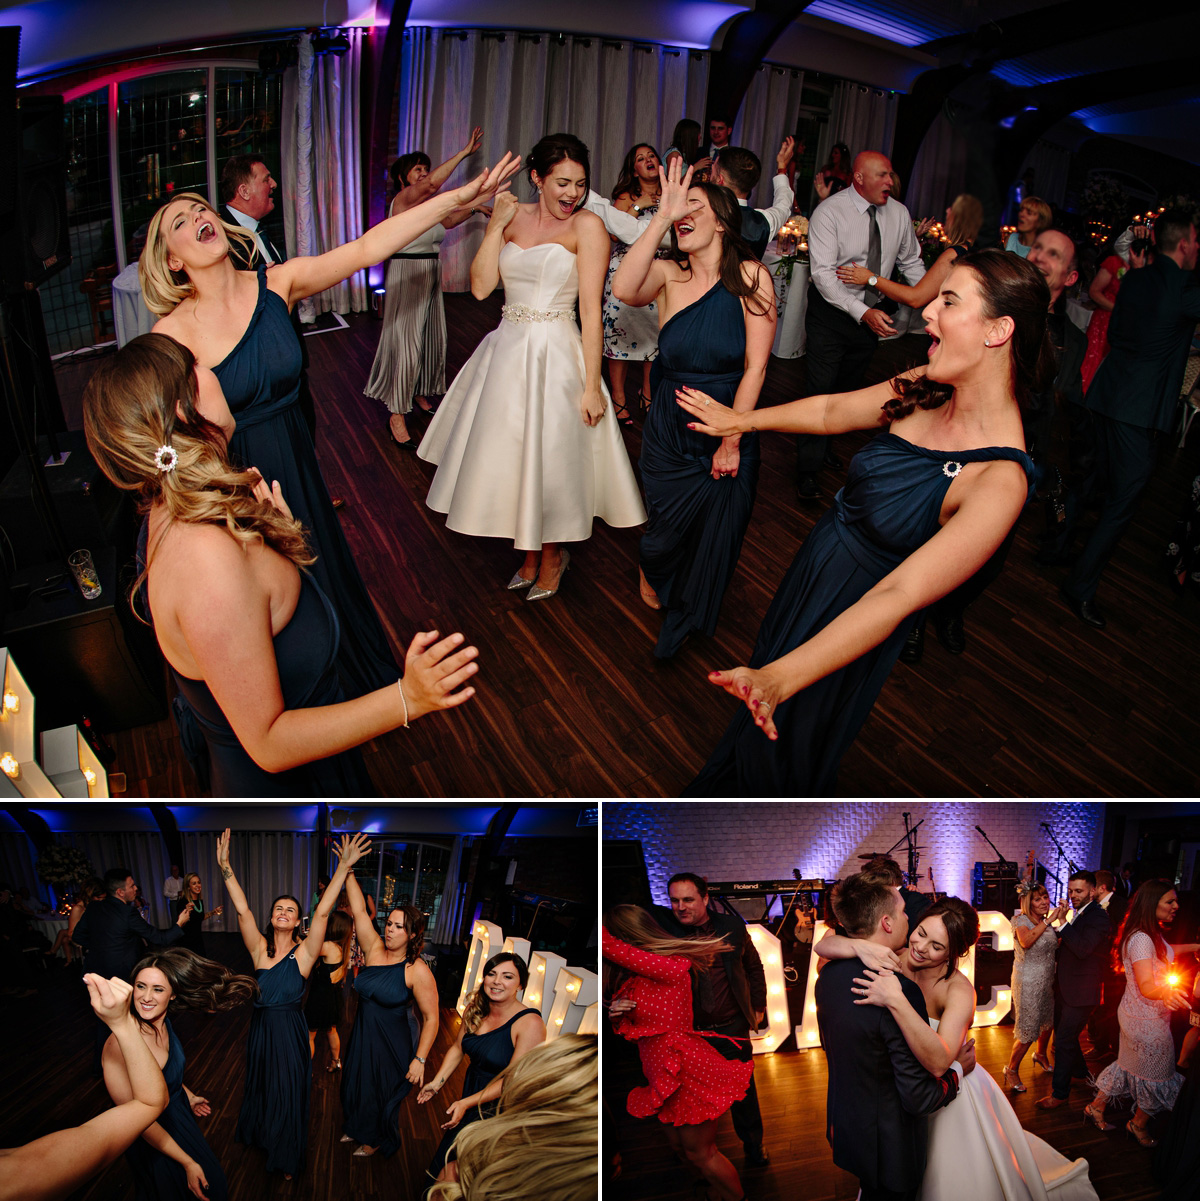 Bride and her Bridesmaids enjoying the evening dancing